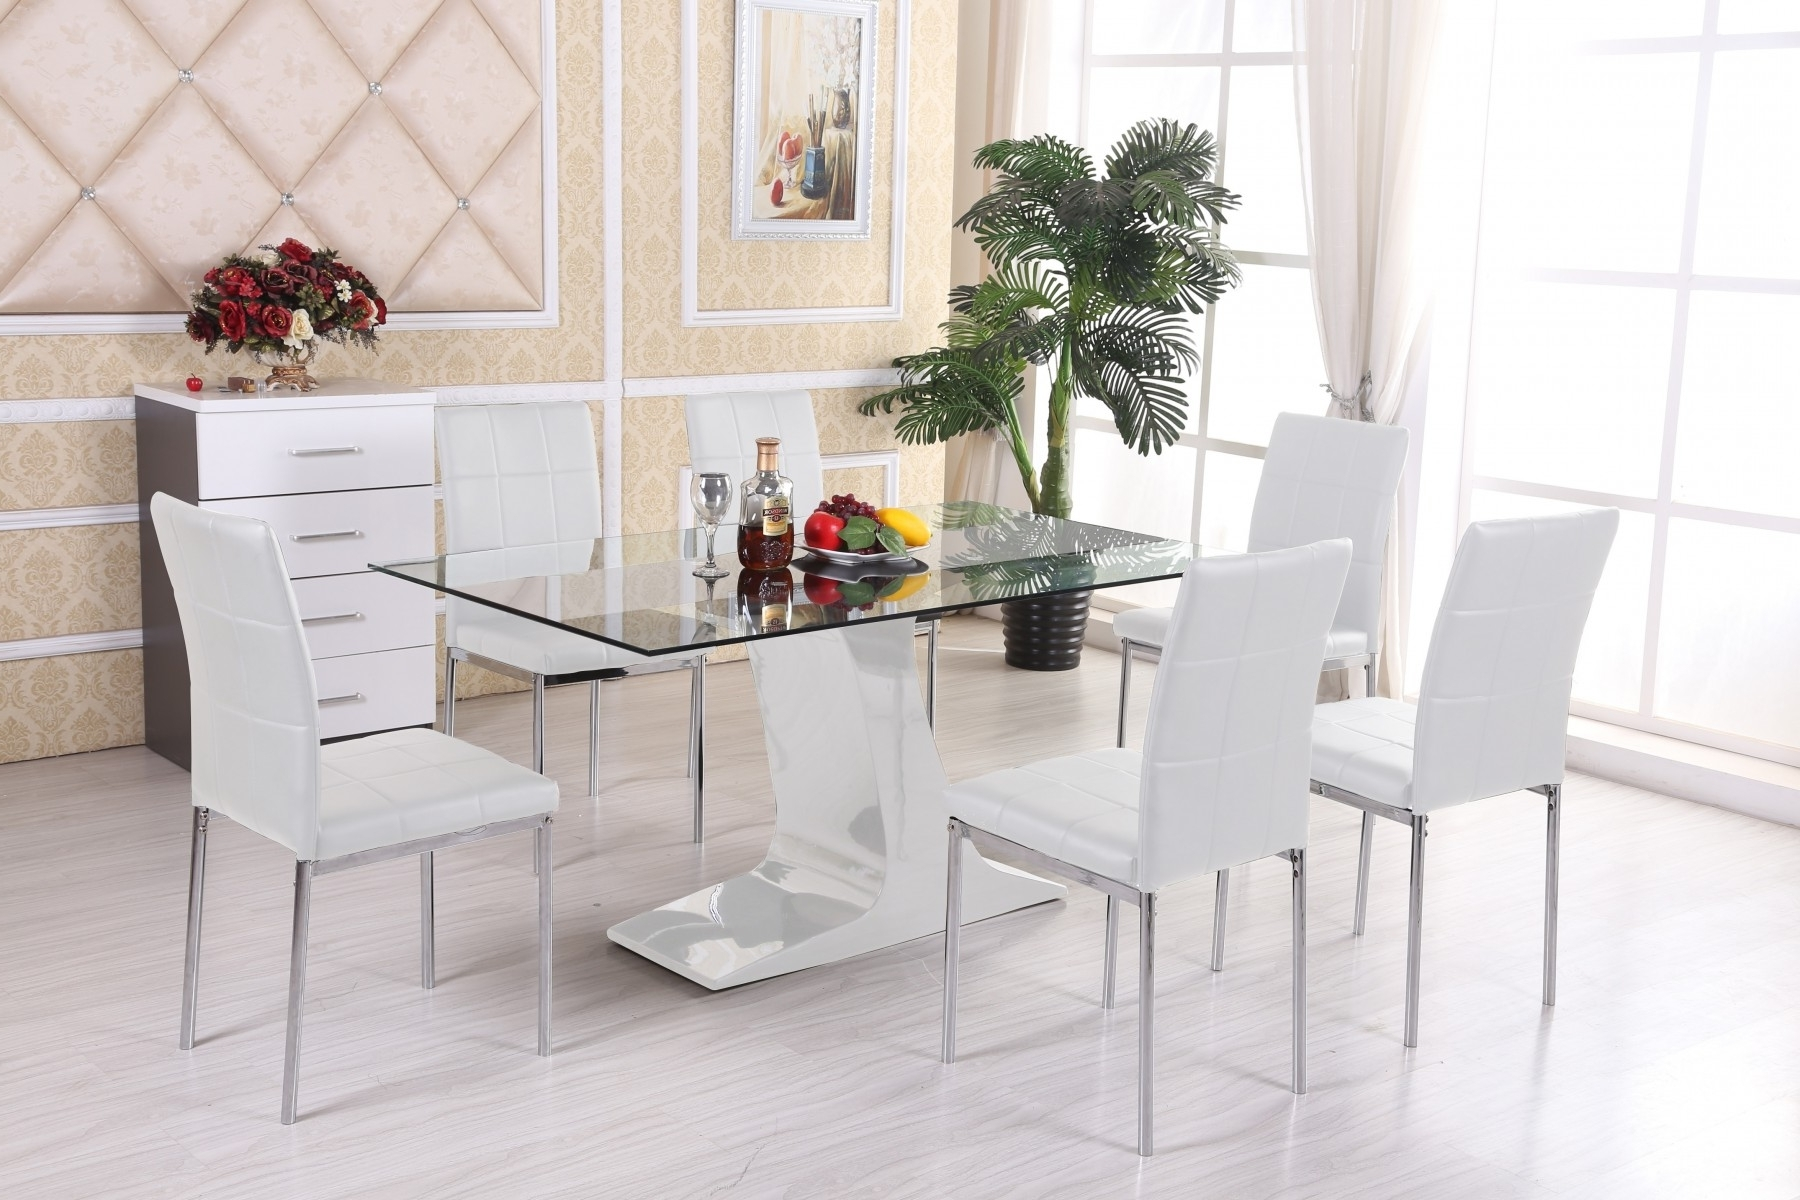 4 Optimal Choices In Glass Dining Table And Chairs – Blogbeen within Fashionable Glass Extendable Dining Tables And 6 Chairs